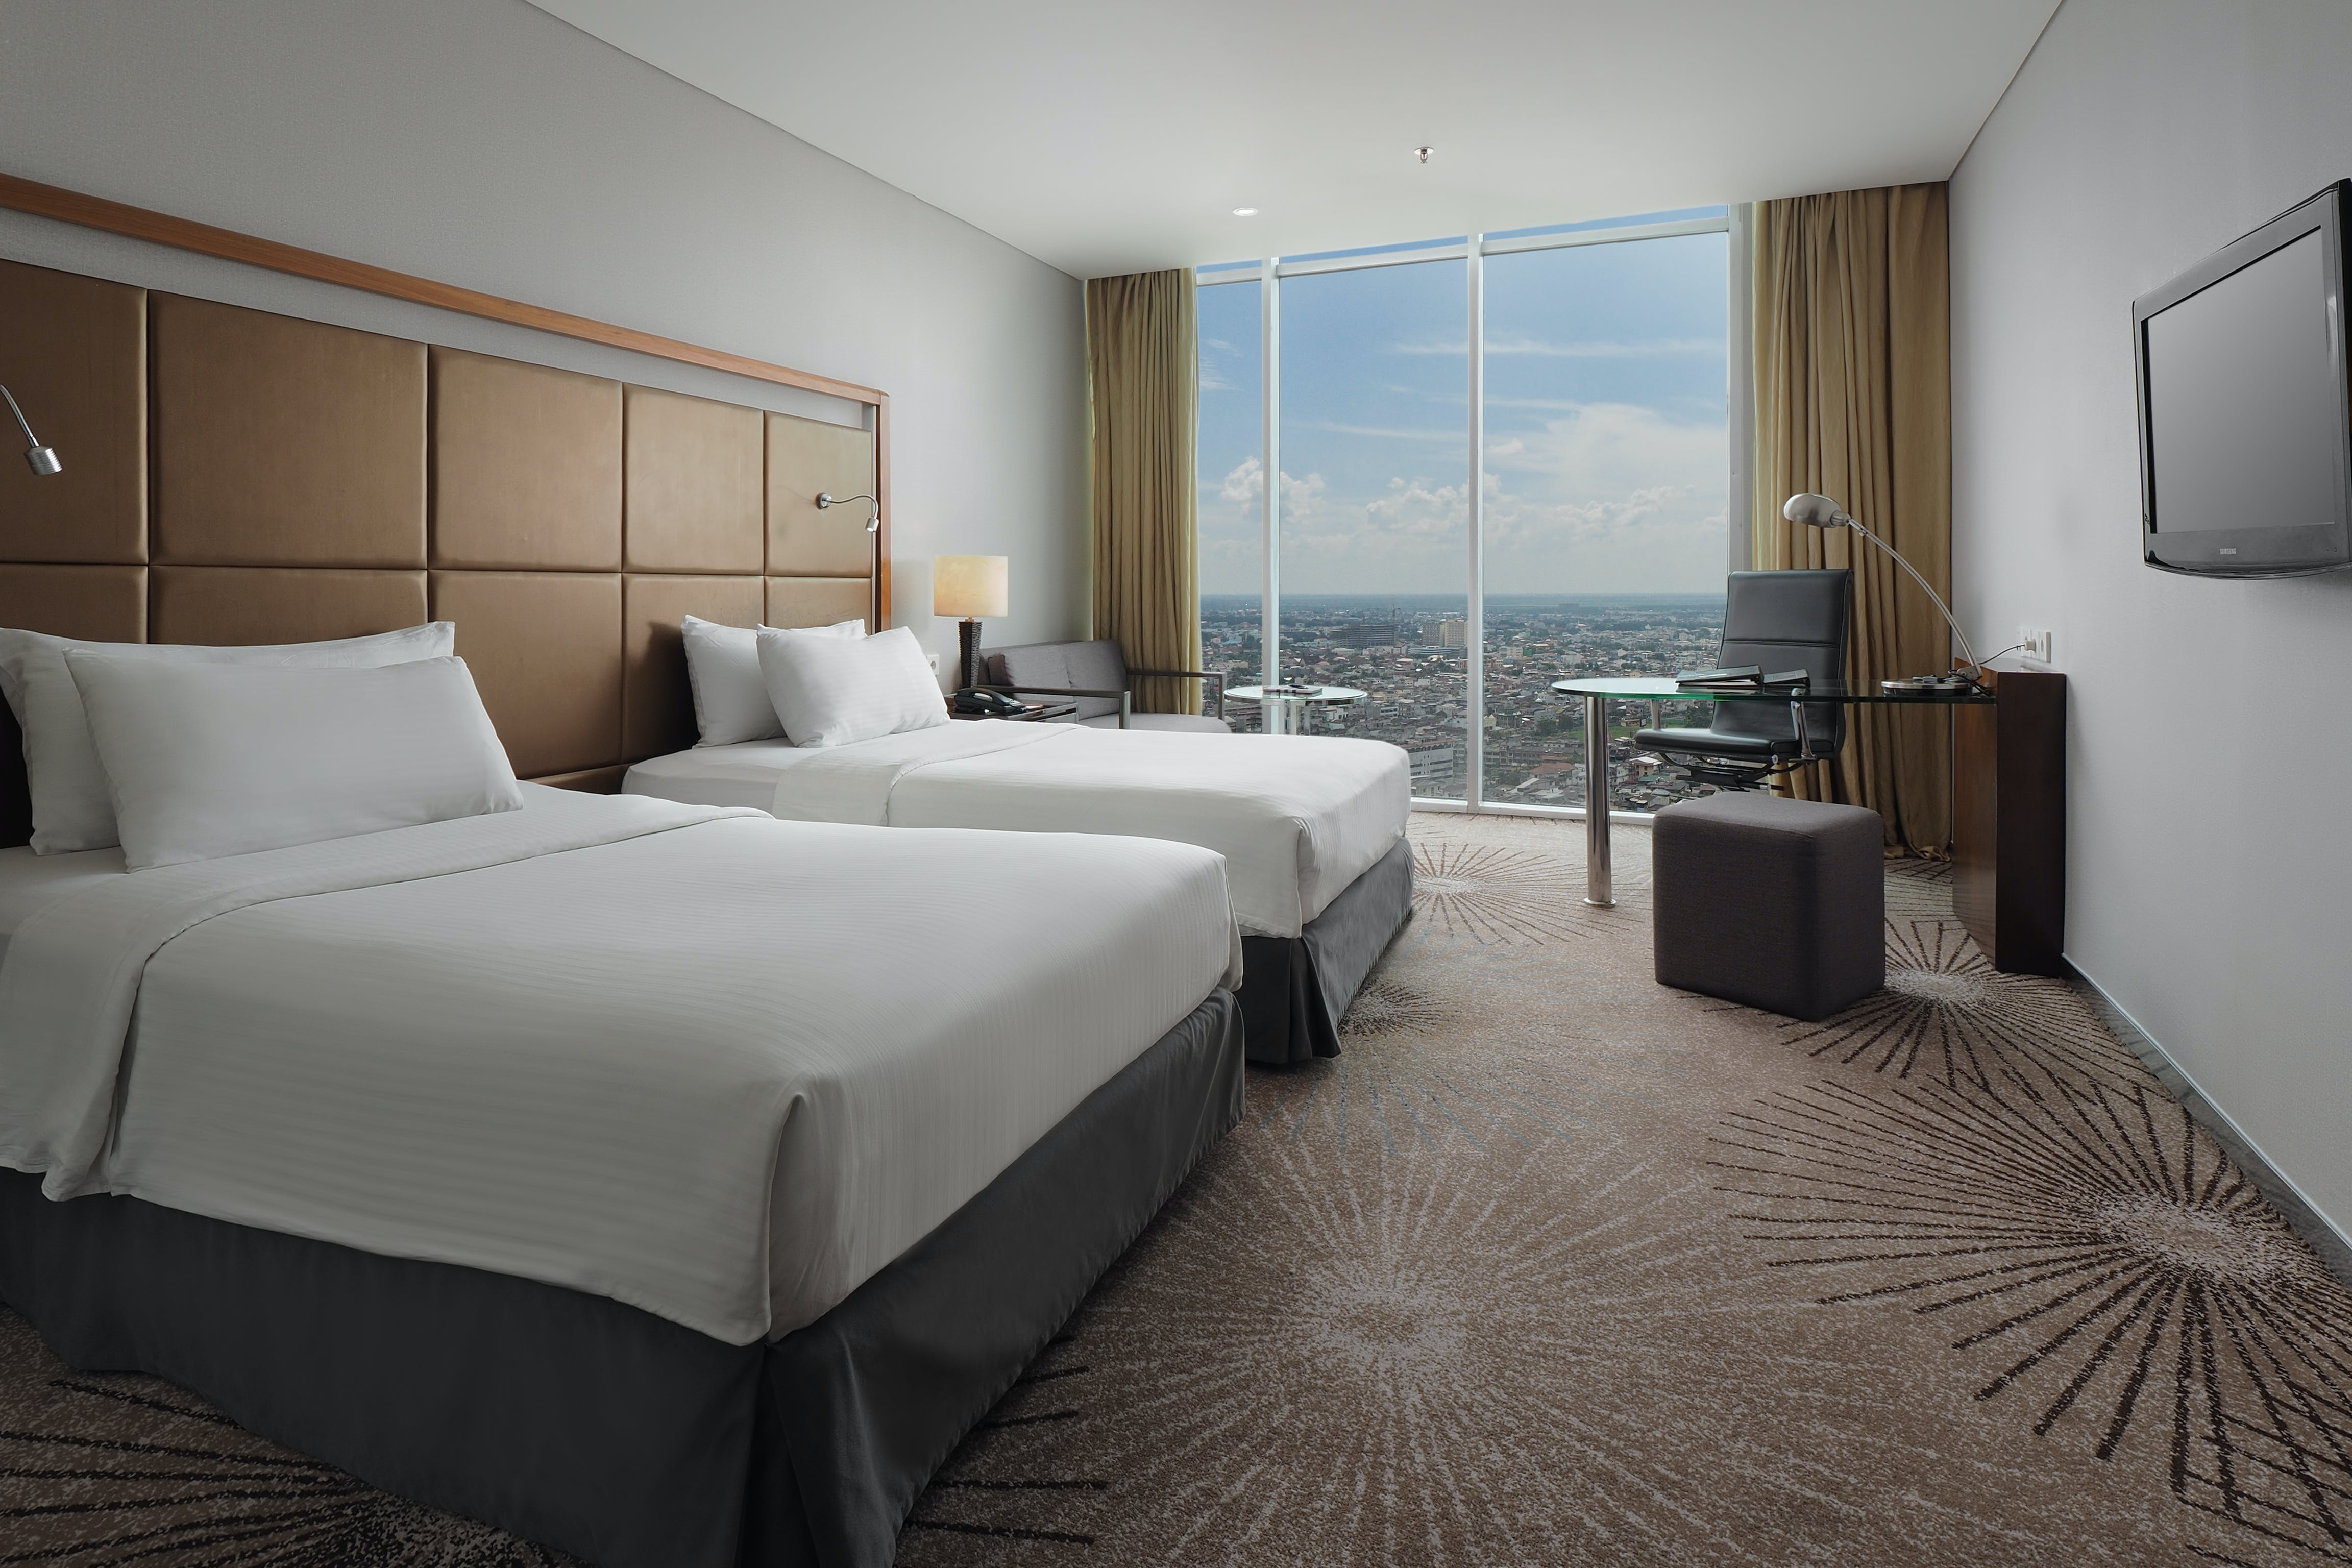 A Superior Deluxe Double bed room with Medan city view